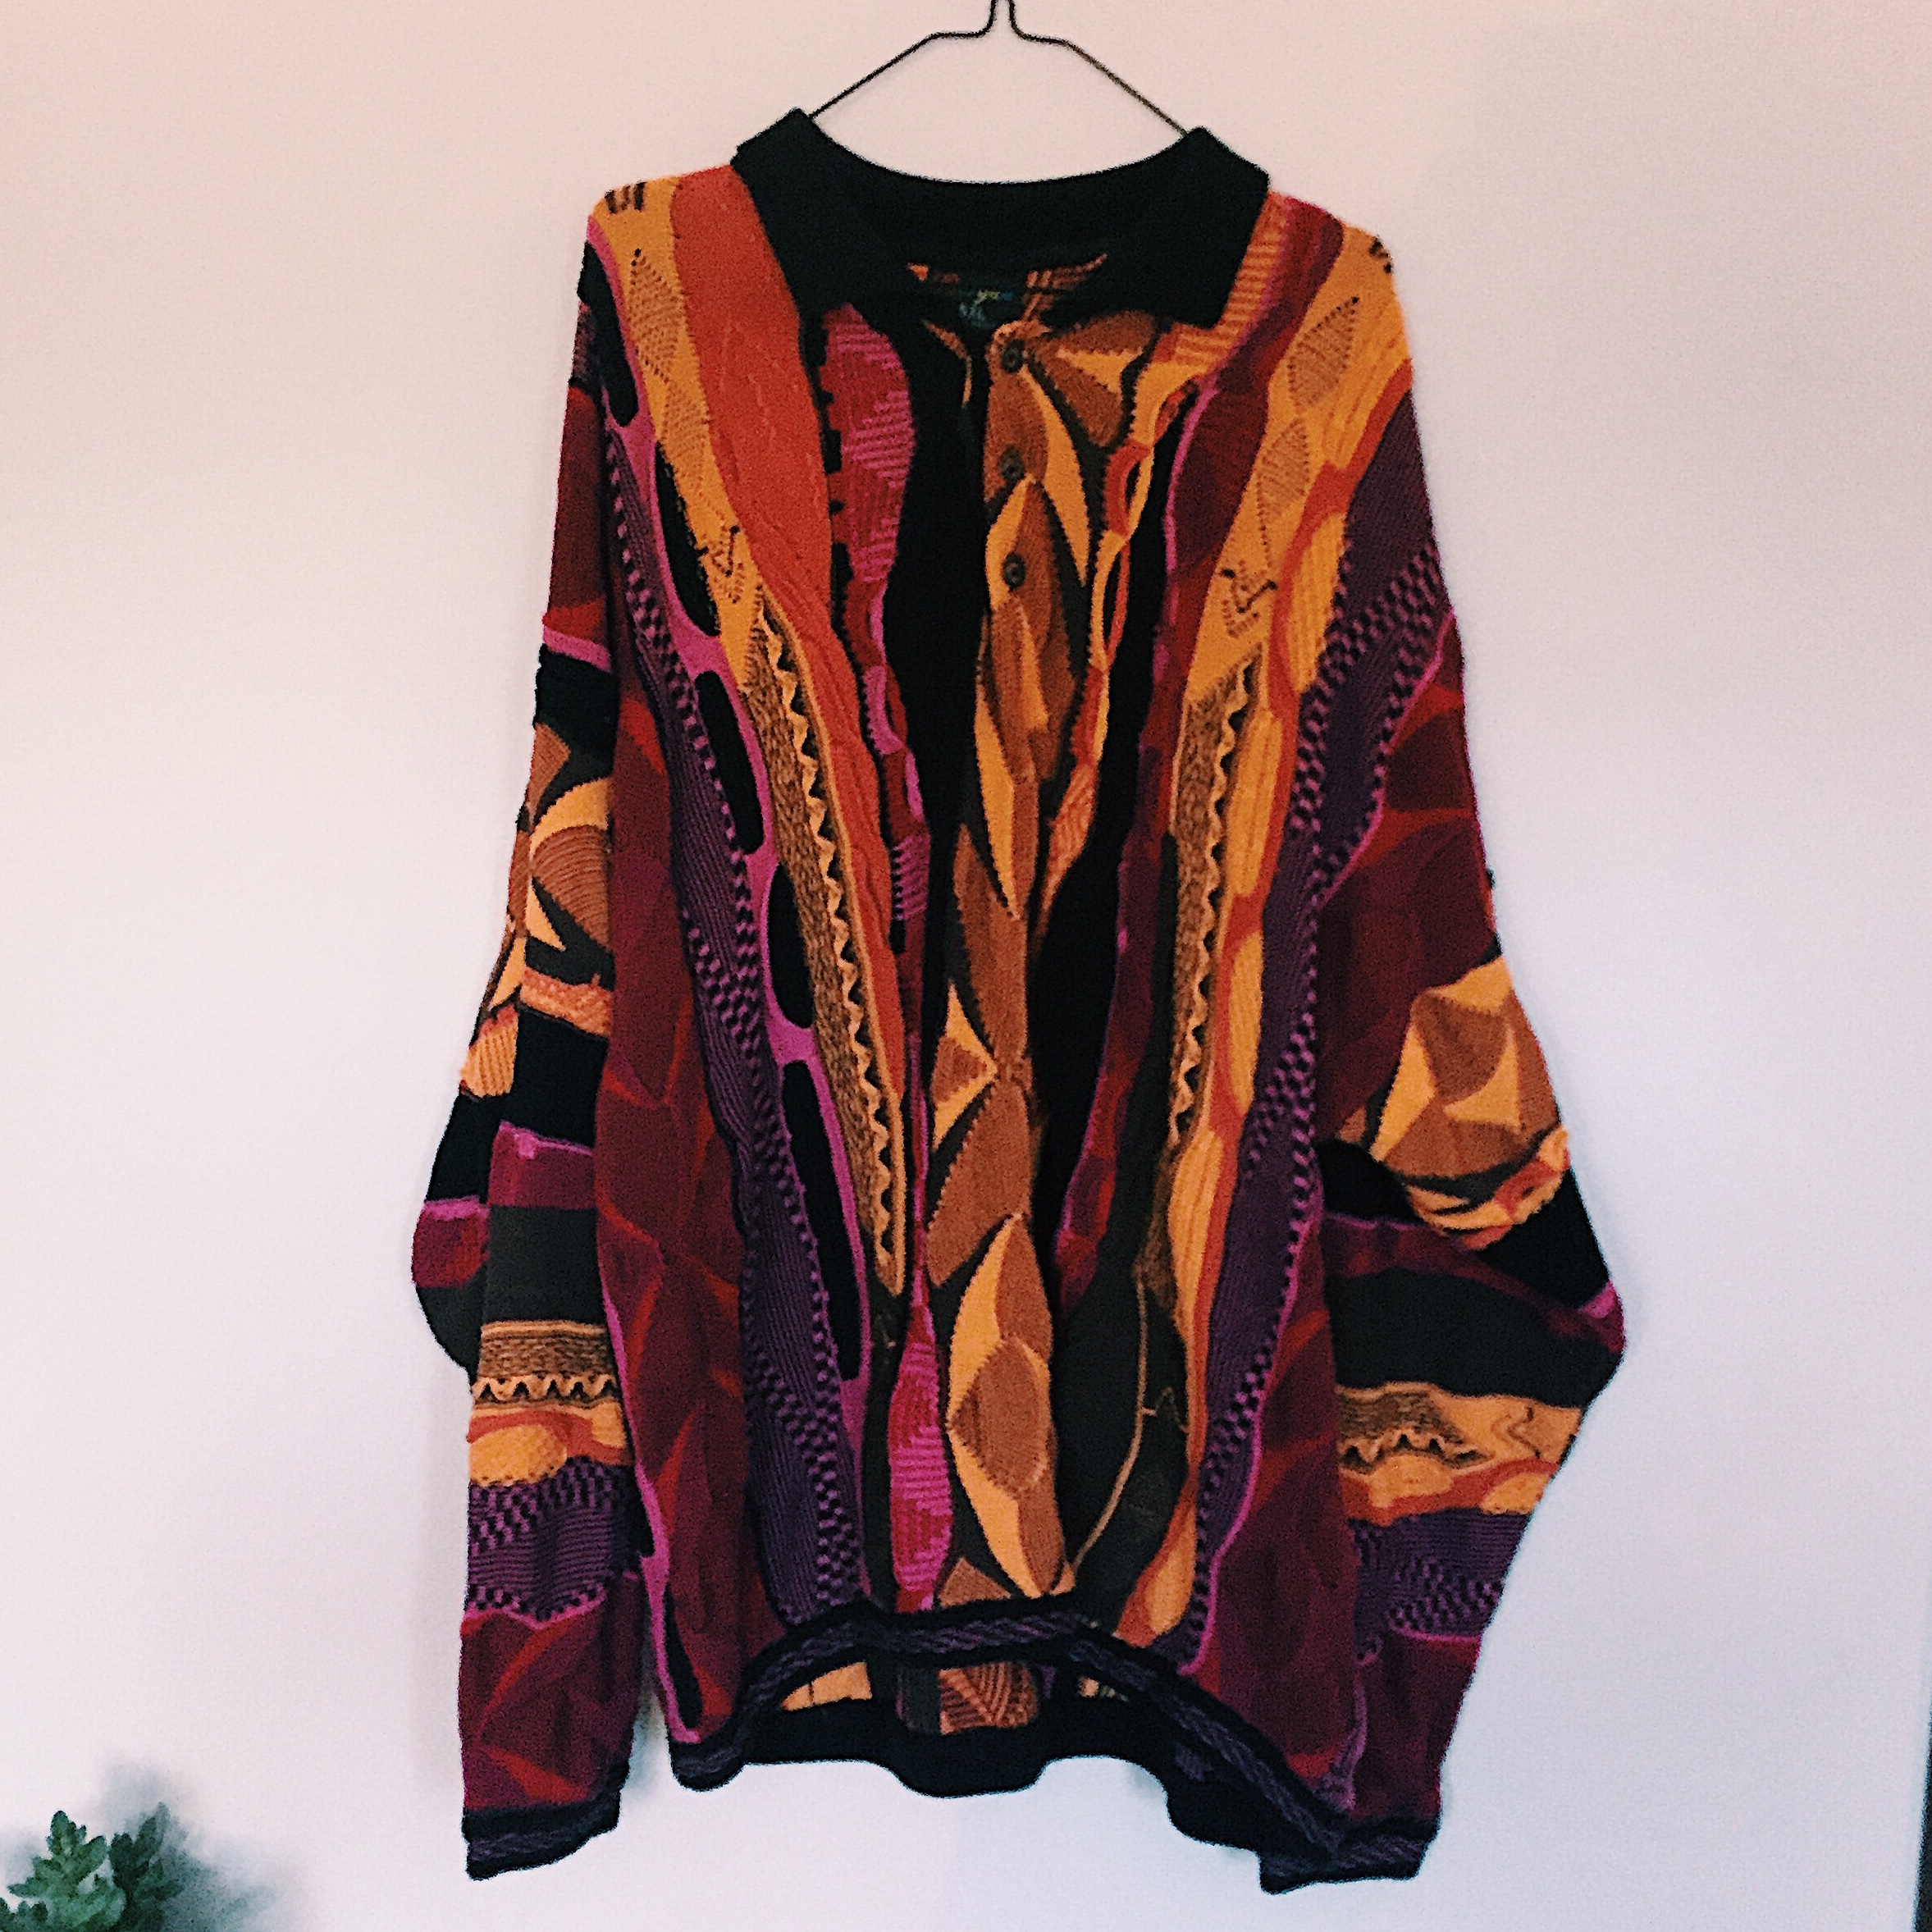 vintage 90s coogi-style sweater size 5xl ; overall... - Depop